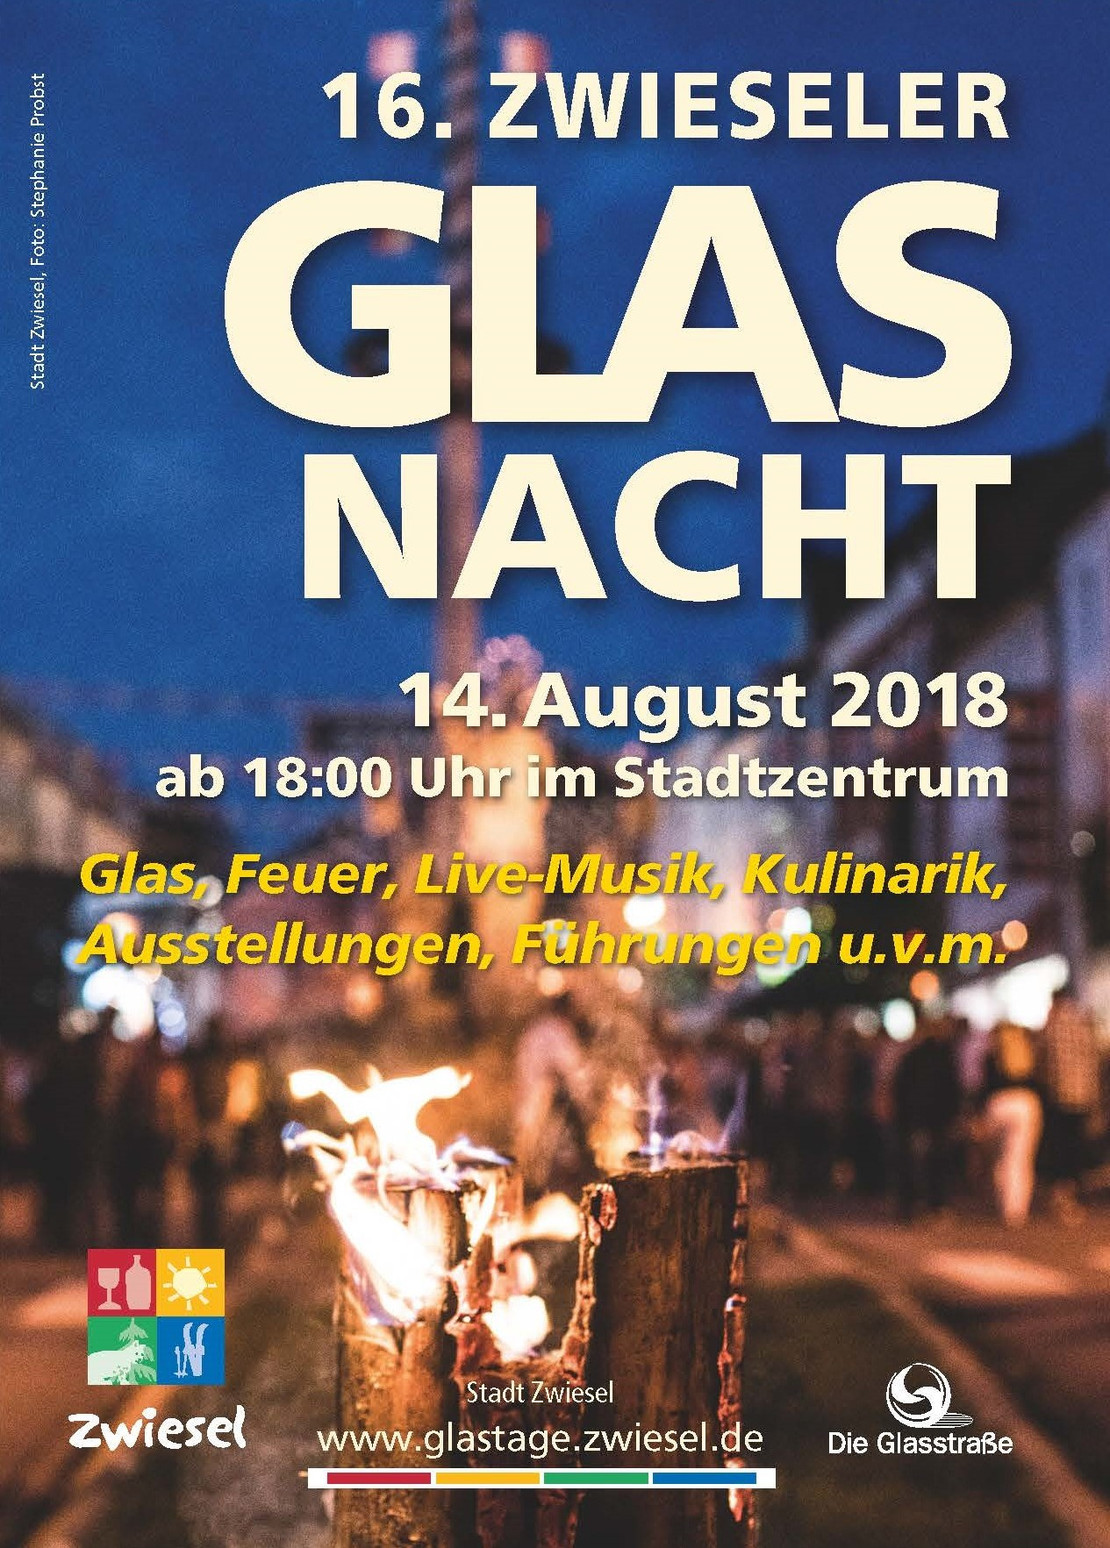 Flyer Glasnacht 2018